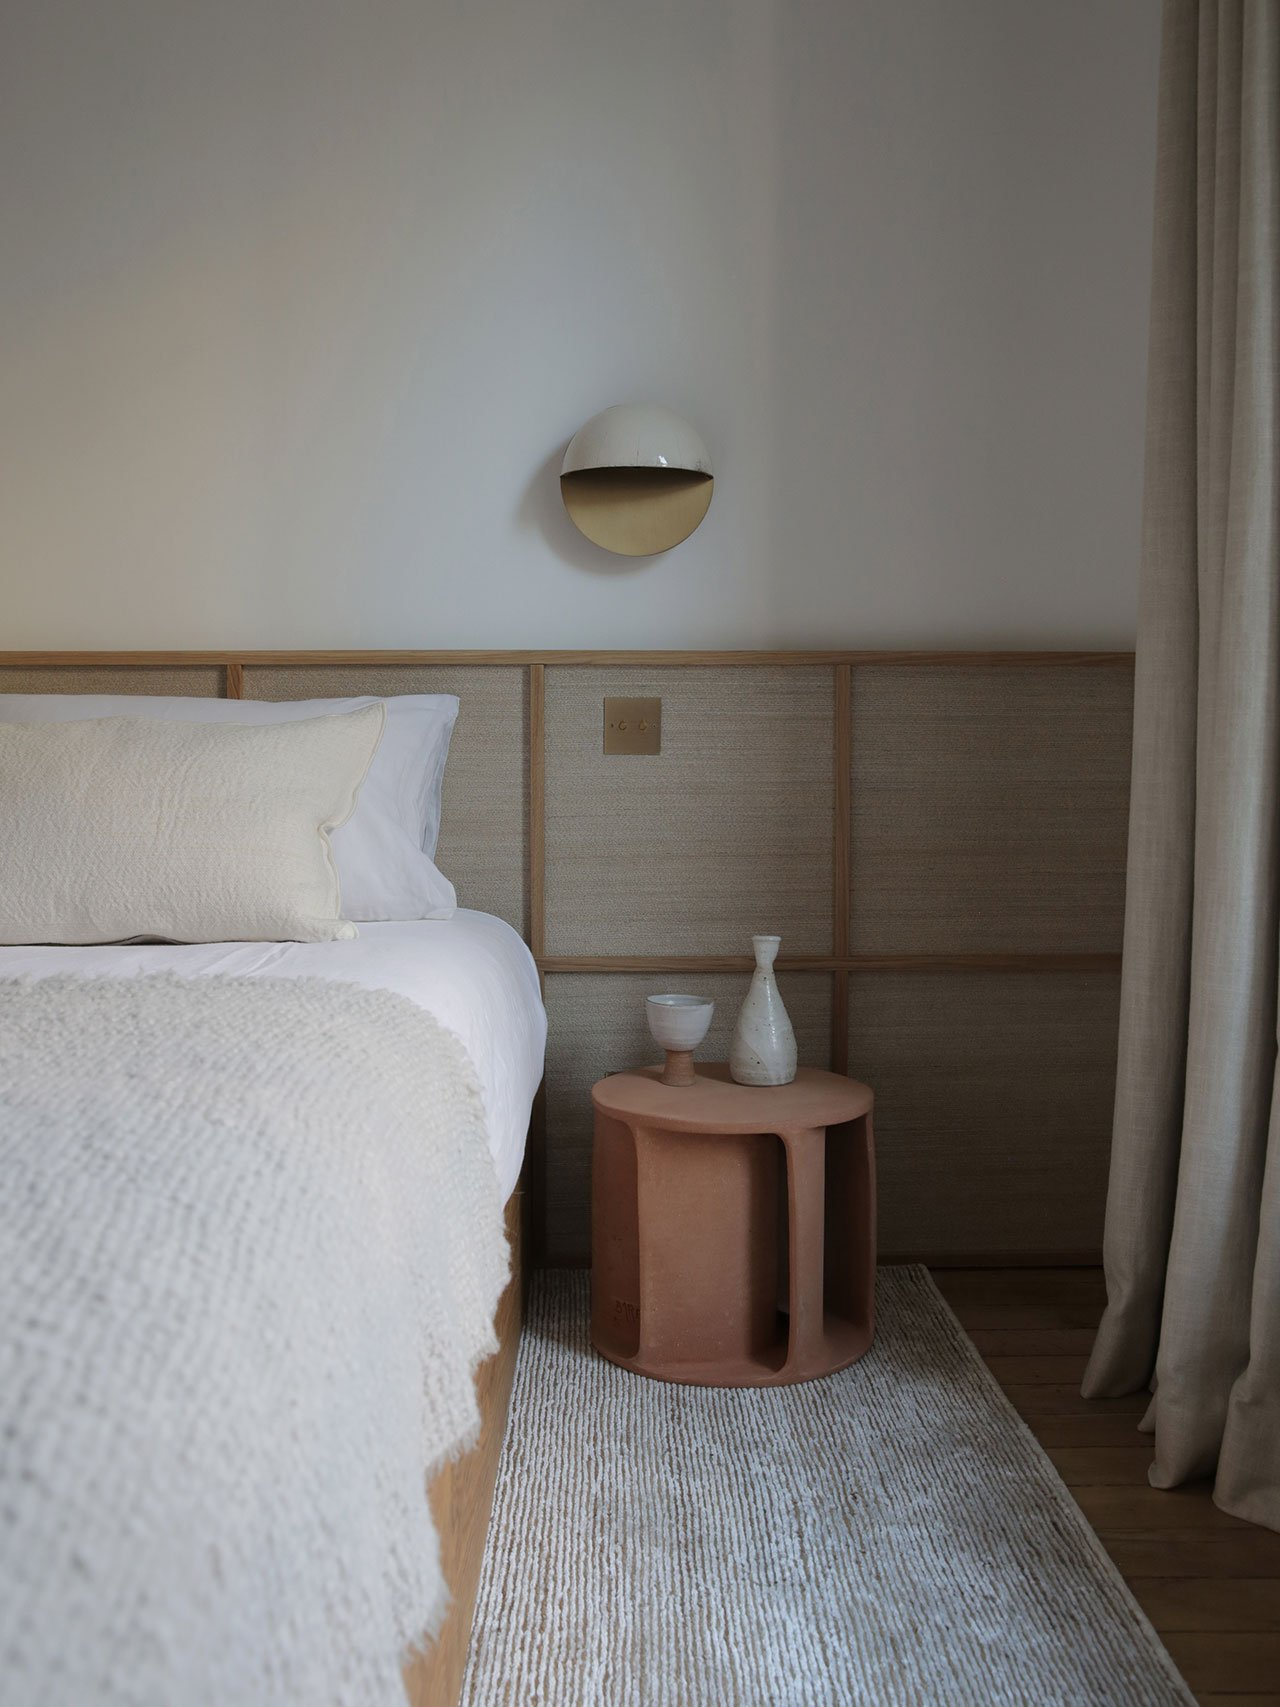 Bedhead in oak and thin rattan wallpaper by Emmanuelle Simon. Sconce in raku and brassby Emmanuelle Simon. Illuminated side table in in earthware by Guy Bareff. Photography by Damien de Medeiros.